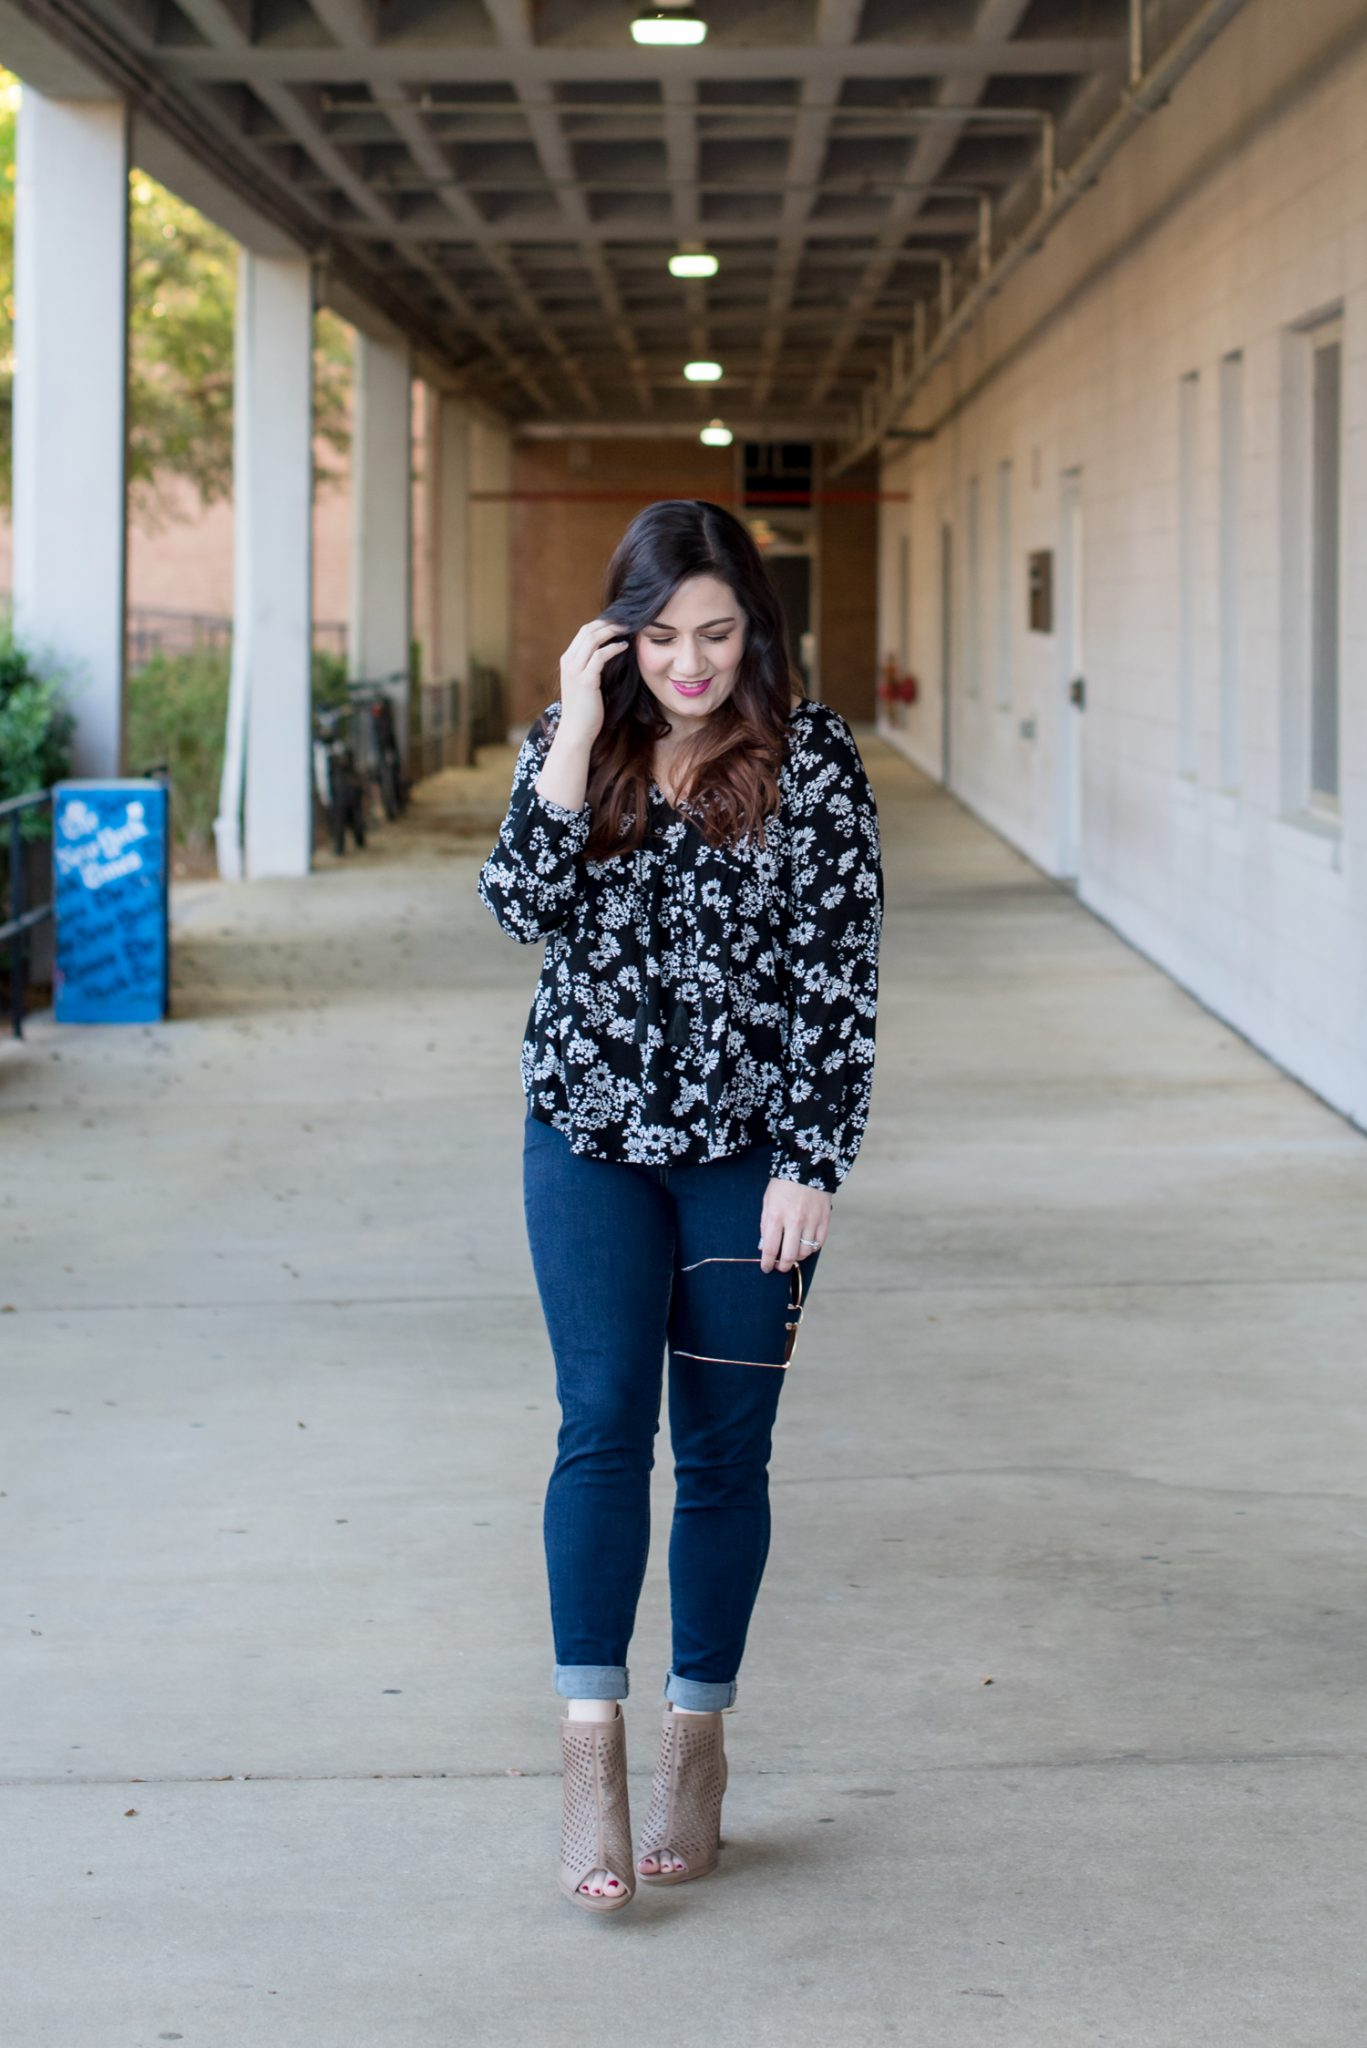 Relaxed Black and White Florals for Spring via @missmollymoon